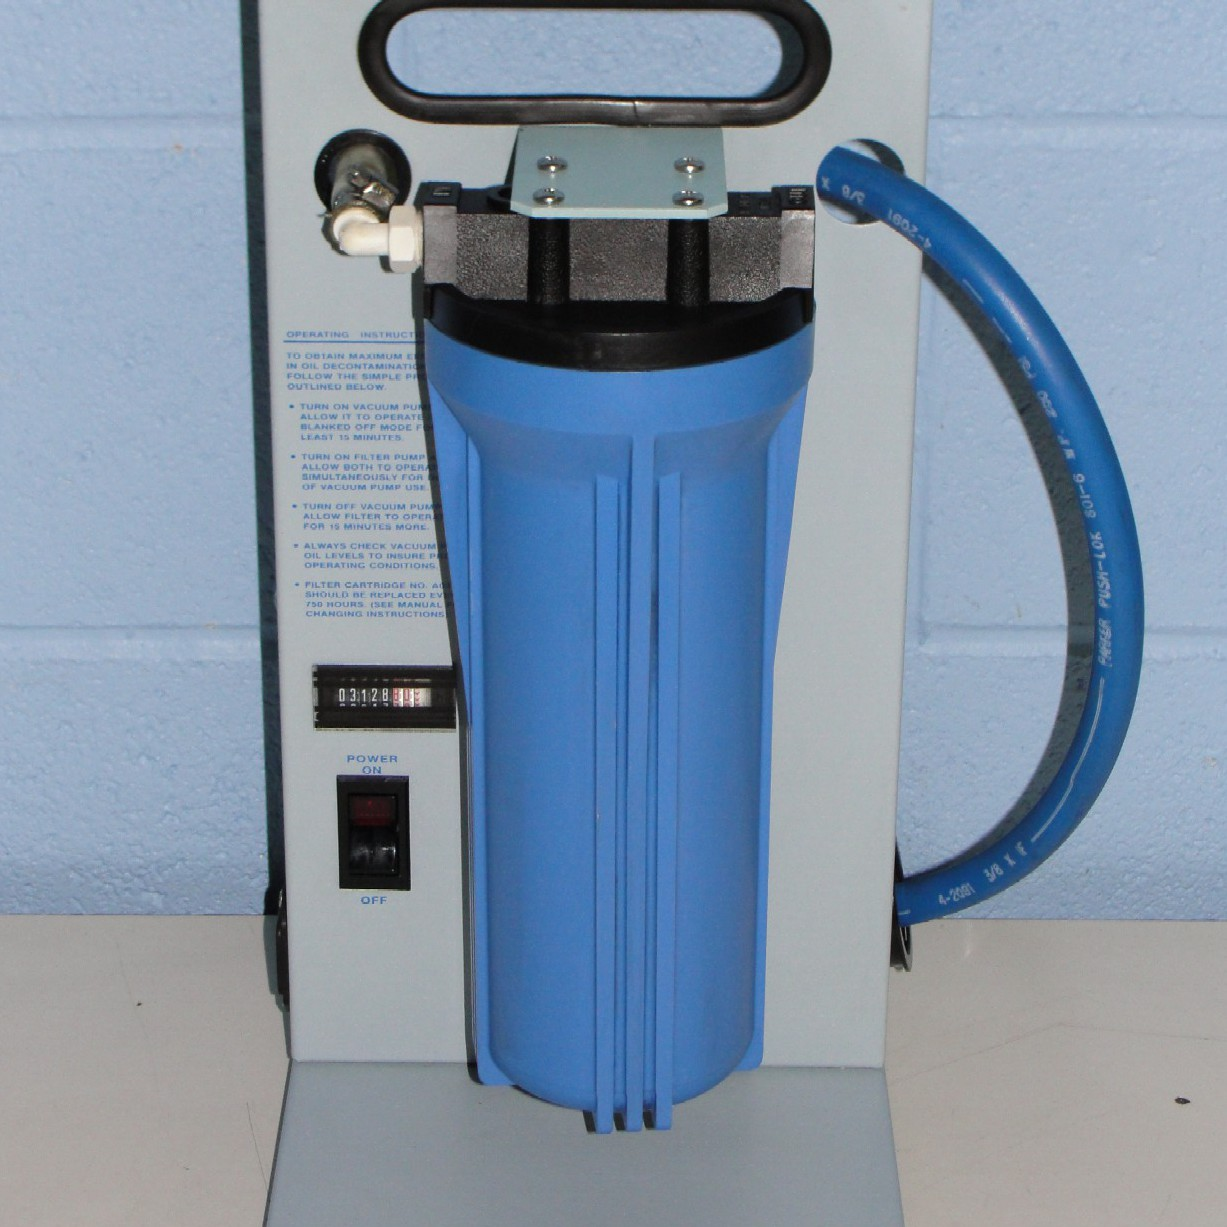 Savant Instruments VPOF 100 Vacuum Pump with Oil Filter Image